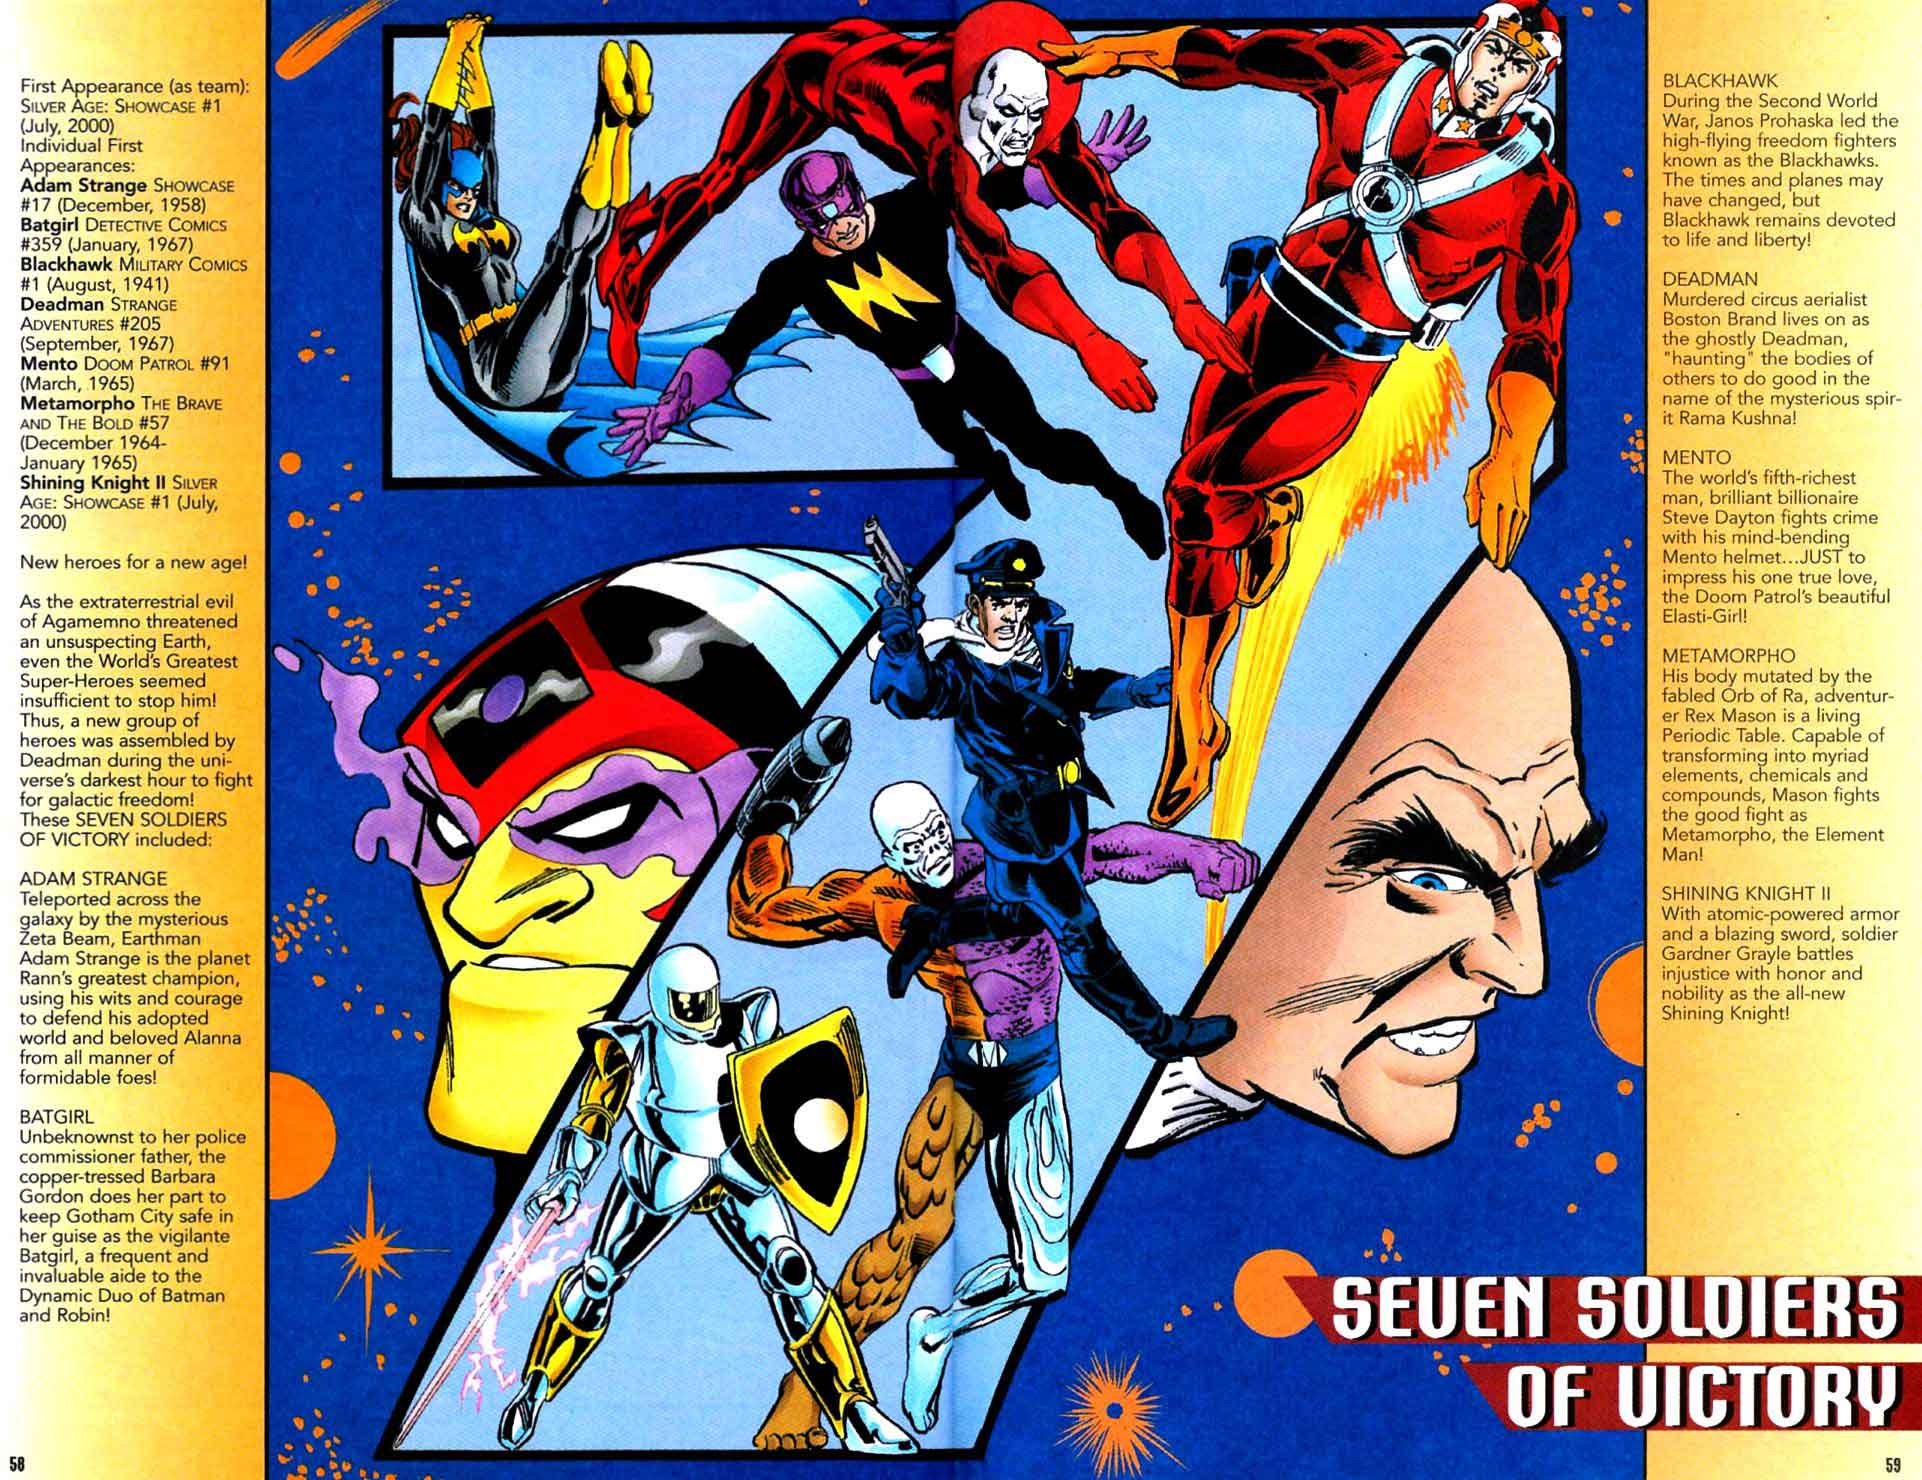 Seven Soldiers of Victory by Scott Beatty & Dick Giordano